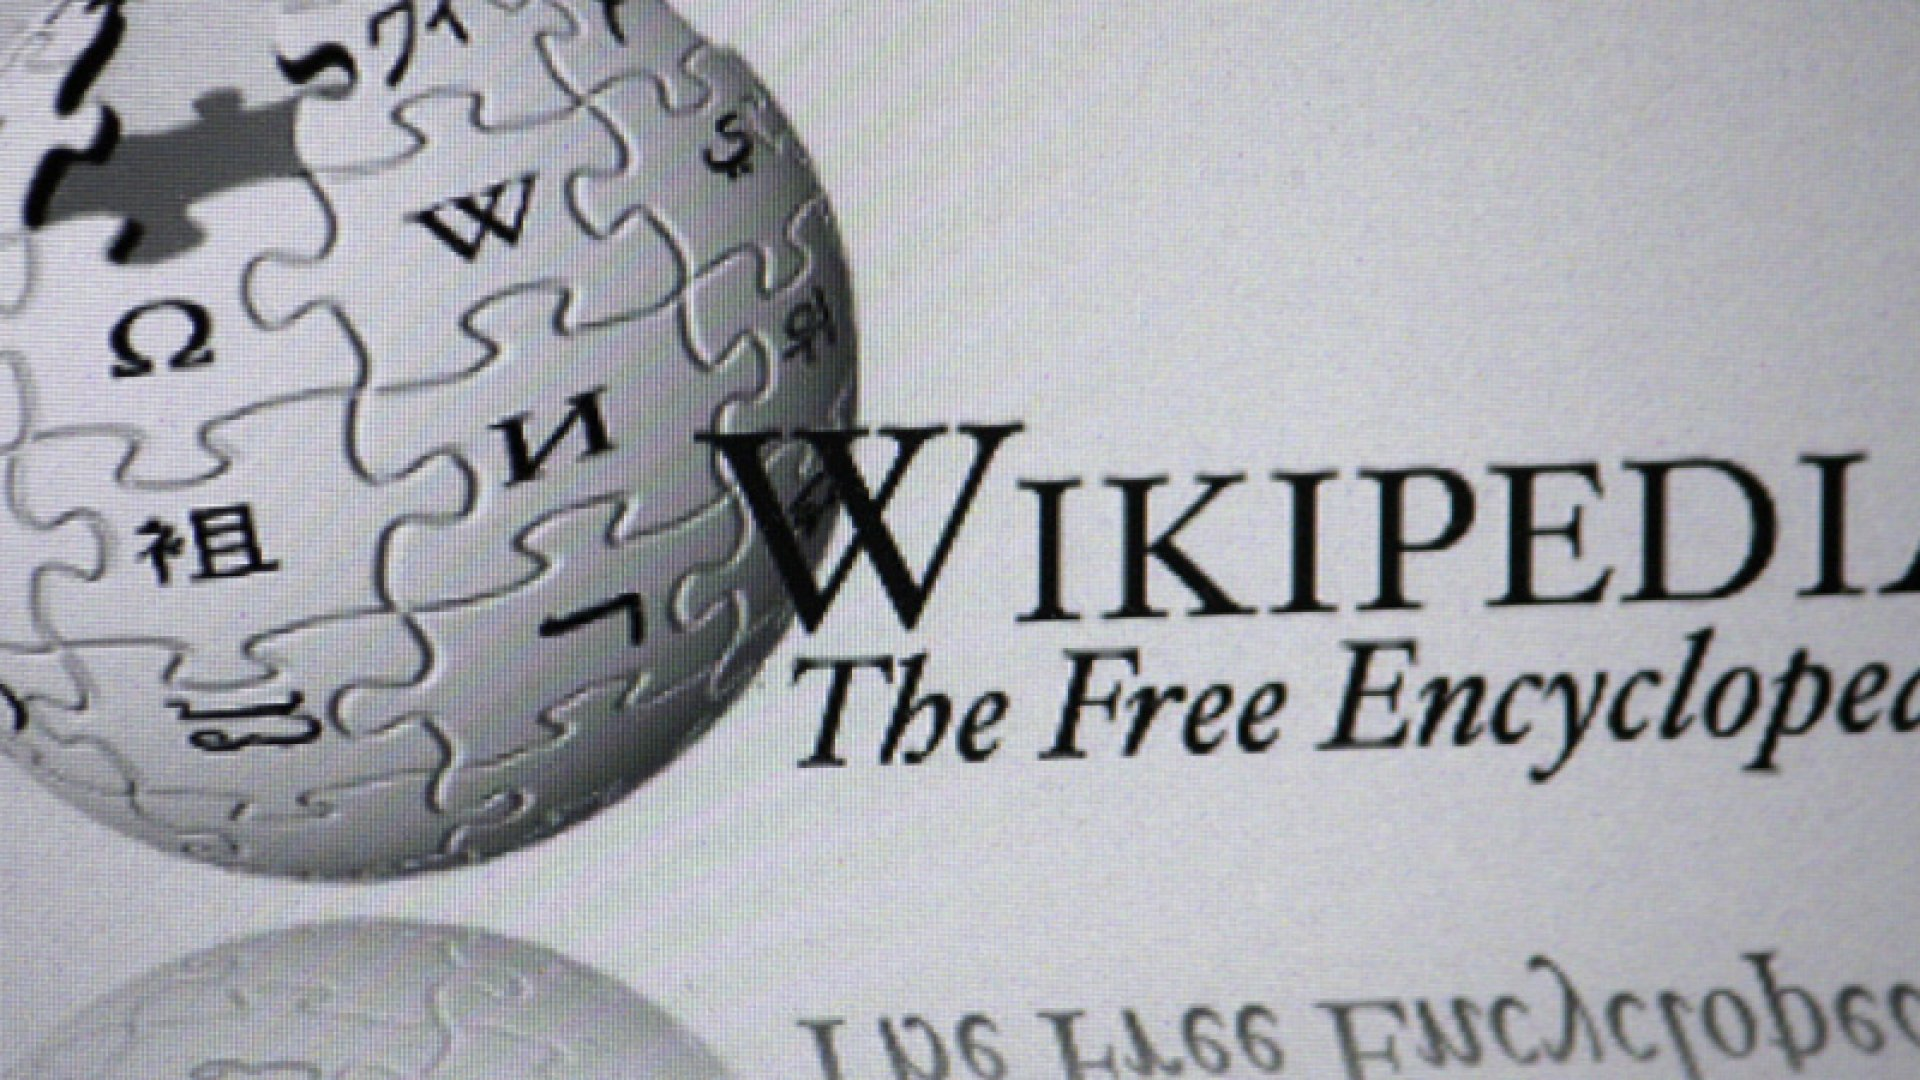 PR Firms Extend an Olive Branch to the Wikipedia Community | Inc.com